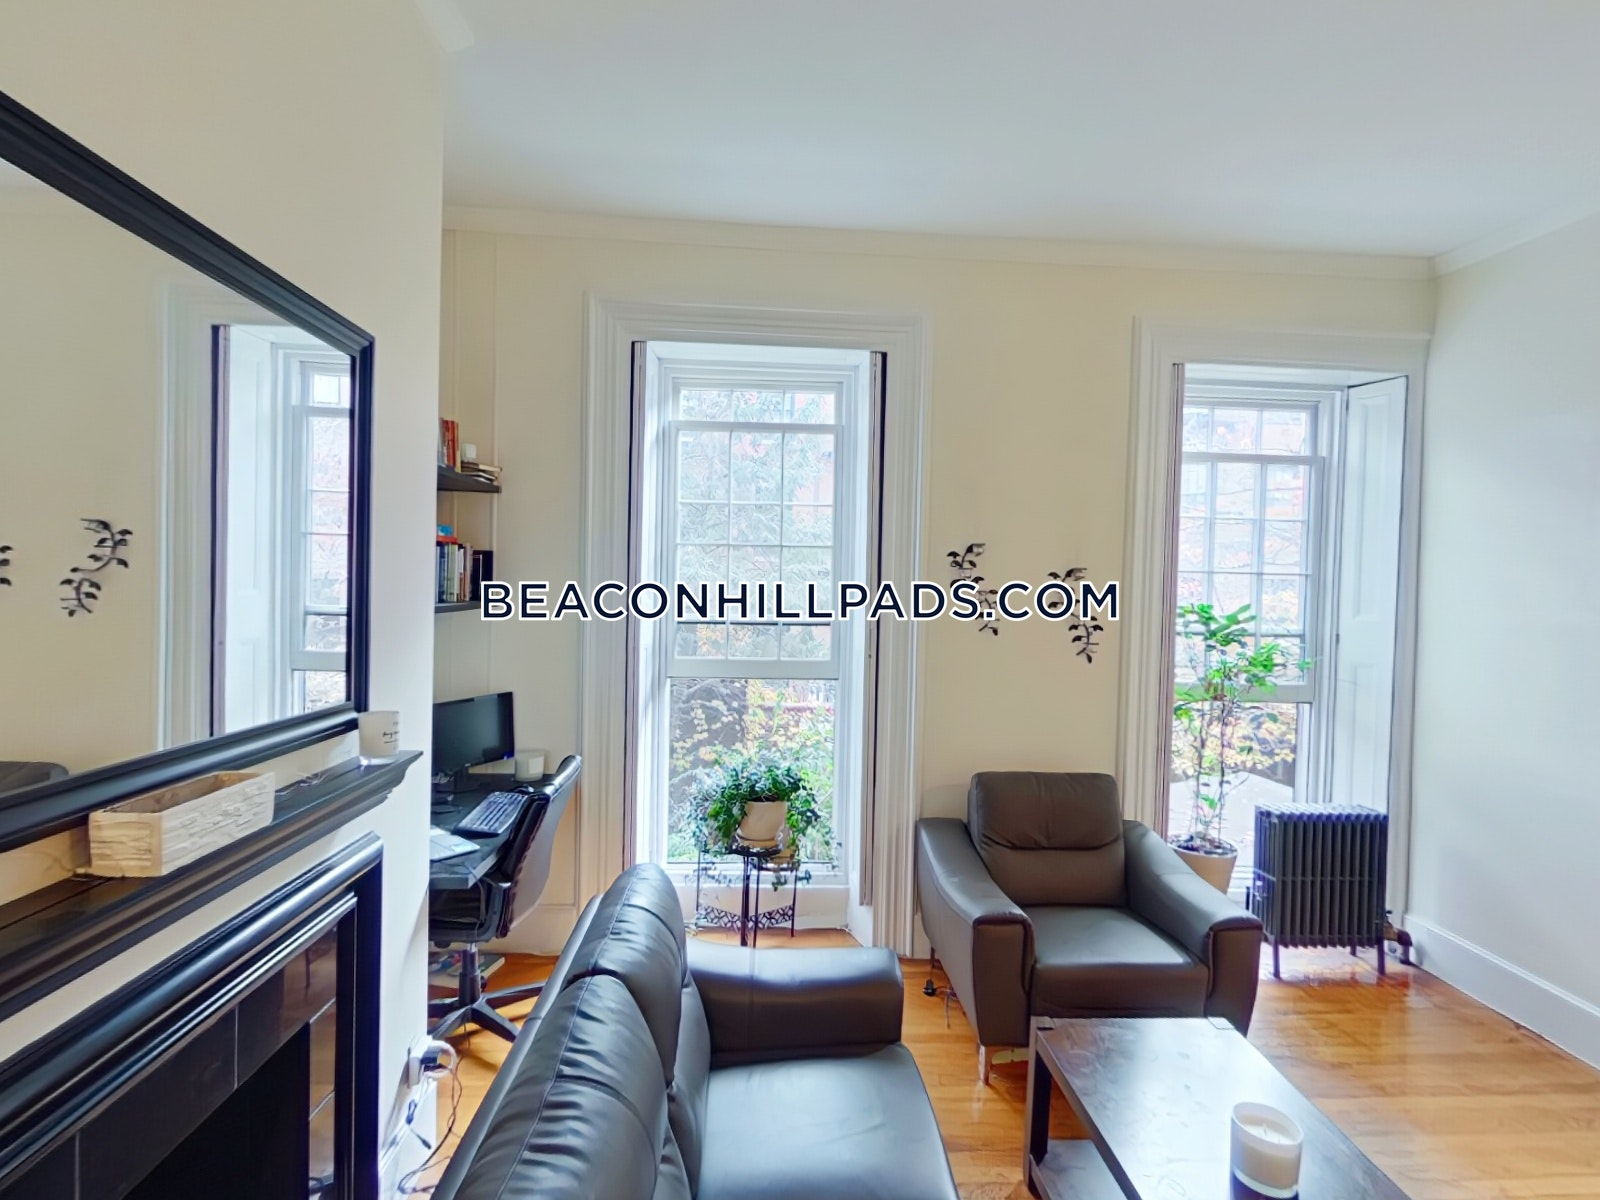 Beacon Hill Gorgeous One Bedroom Apartment Located On Joy St Beacon Hill No Broker Fee Boston 2 150